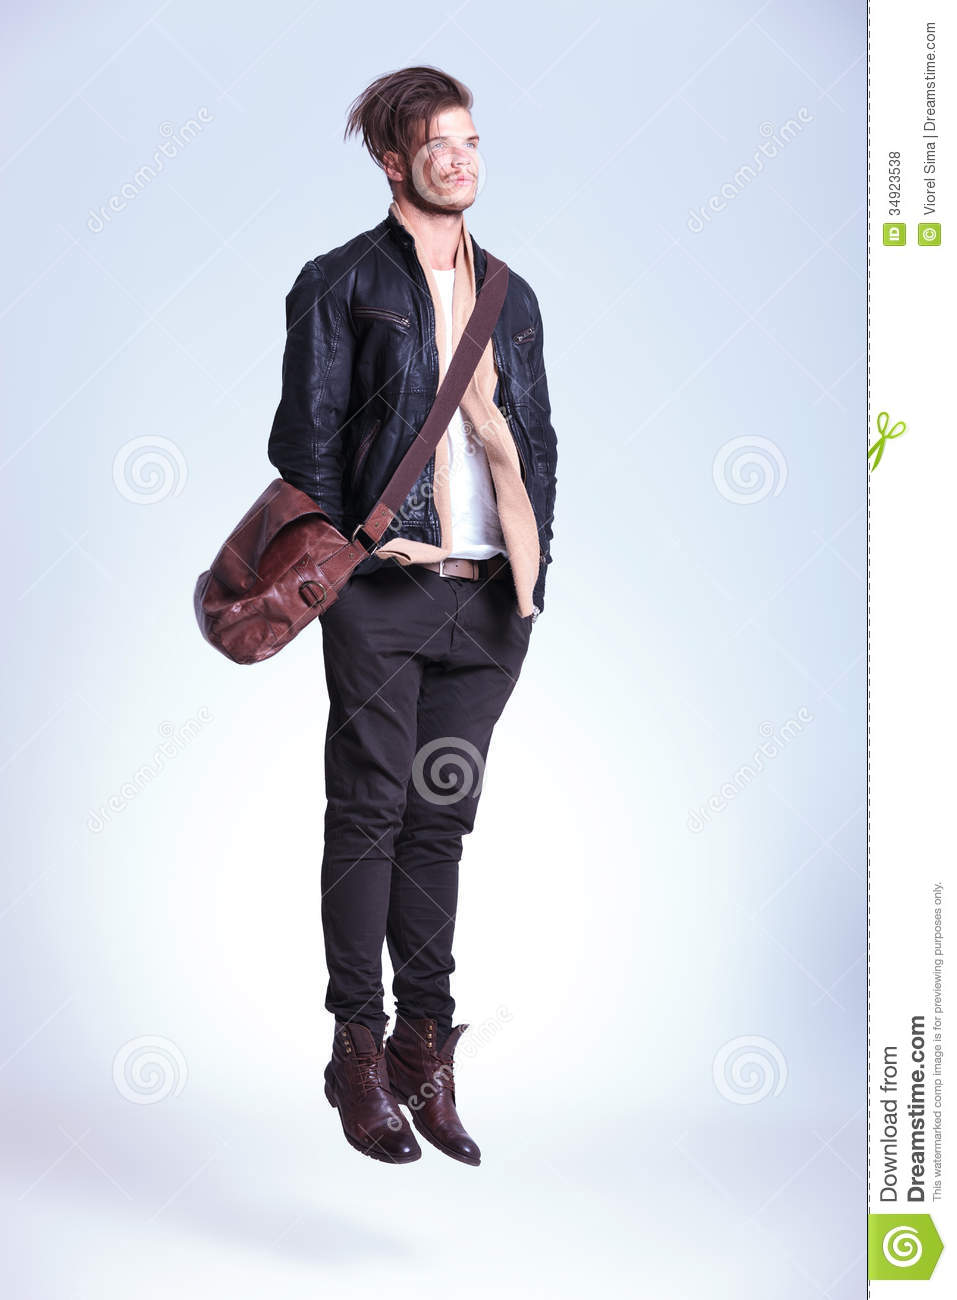 Fashion Man With Hands In Pockets Is Jumping Stock Photo